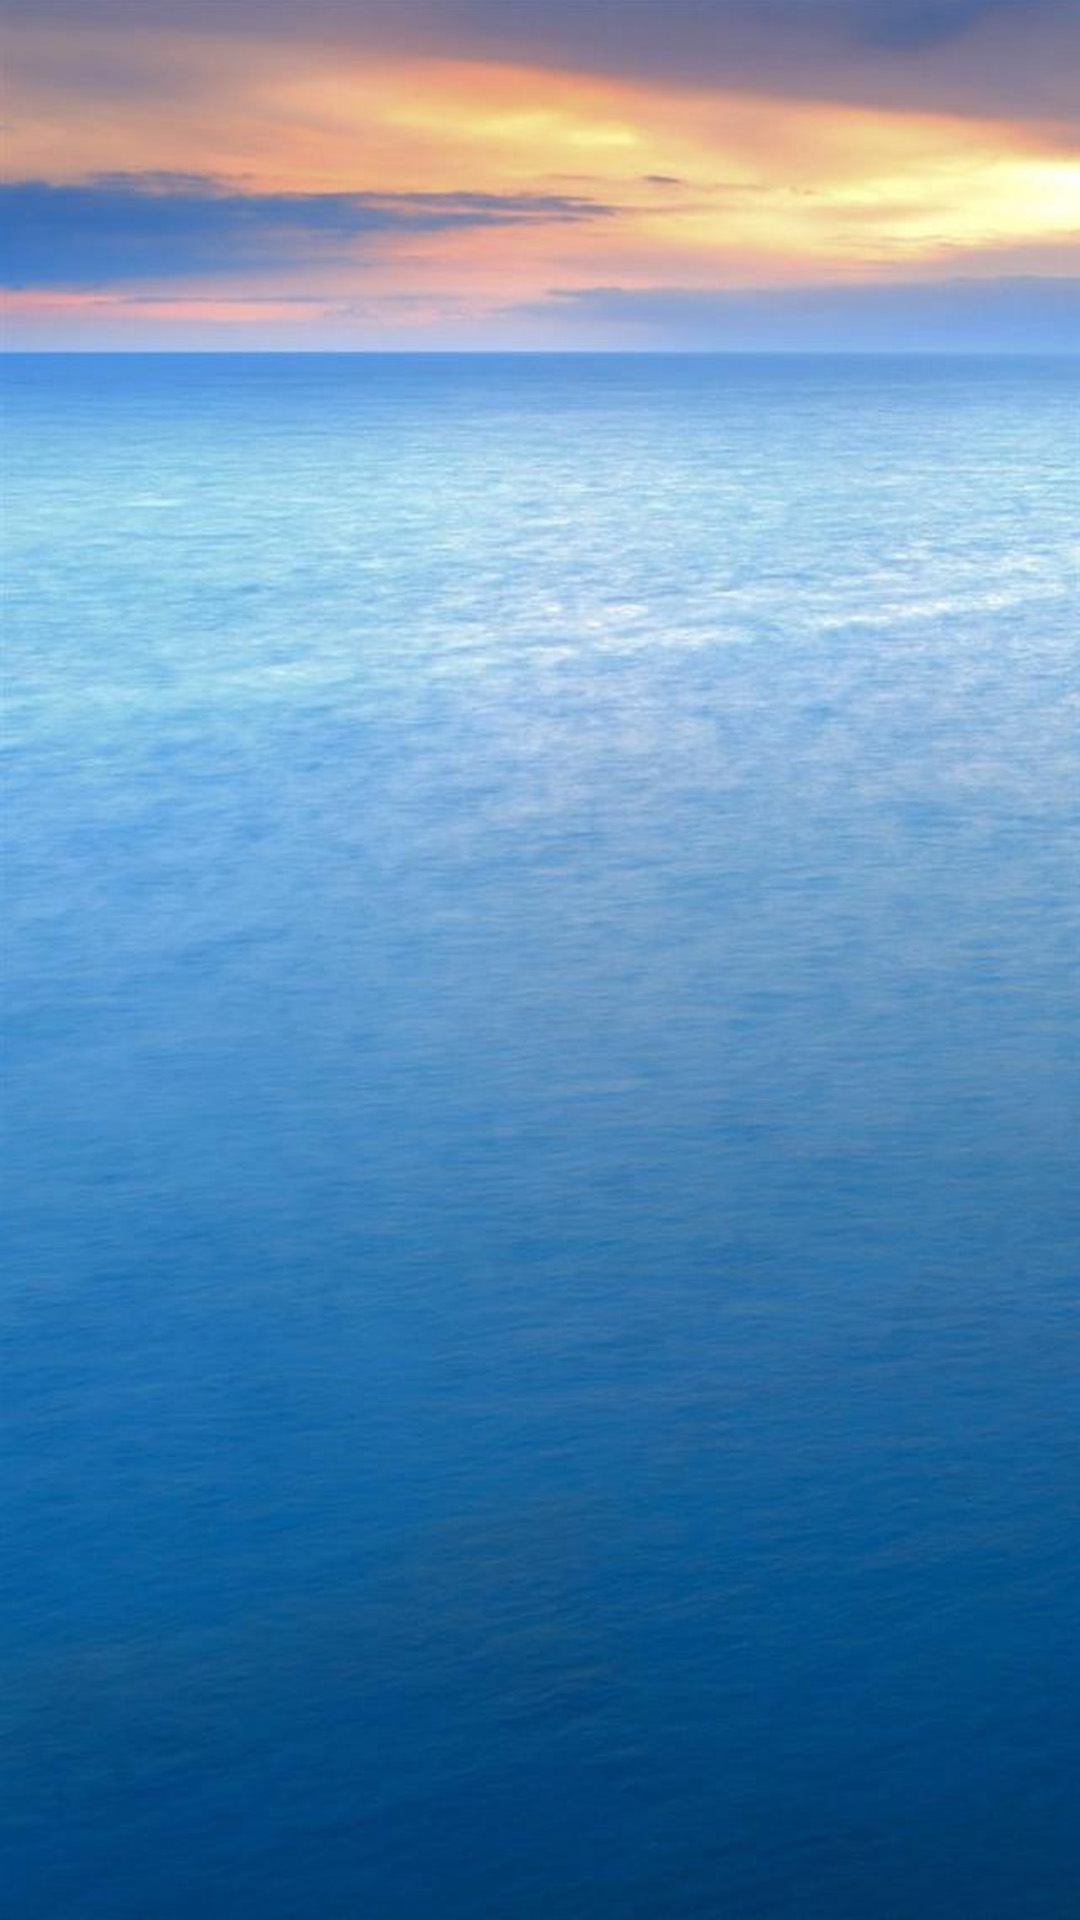 Sea And Sun Wallpapers For Iphone